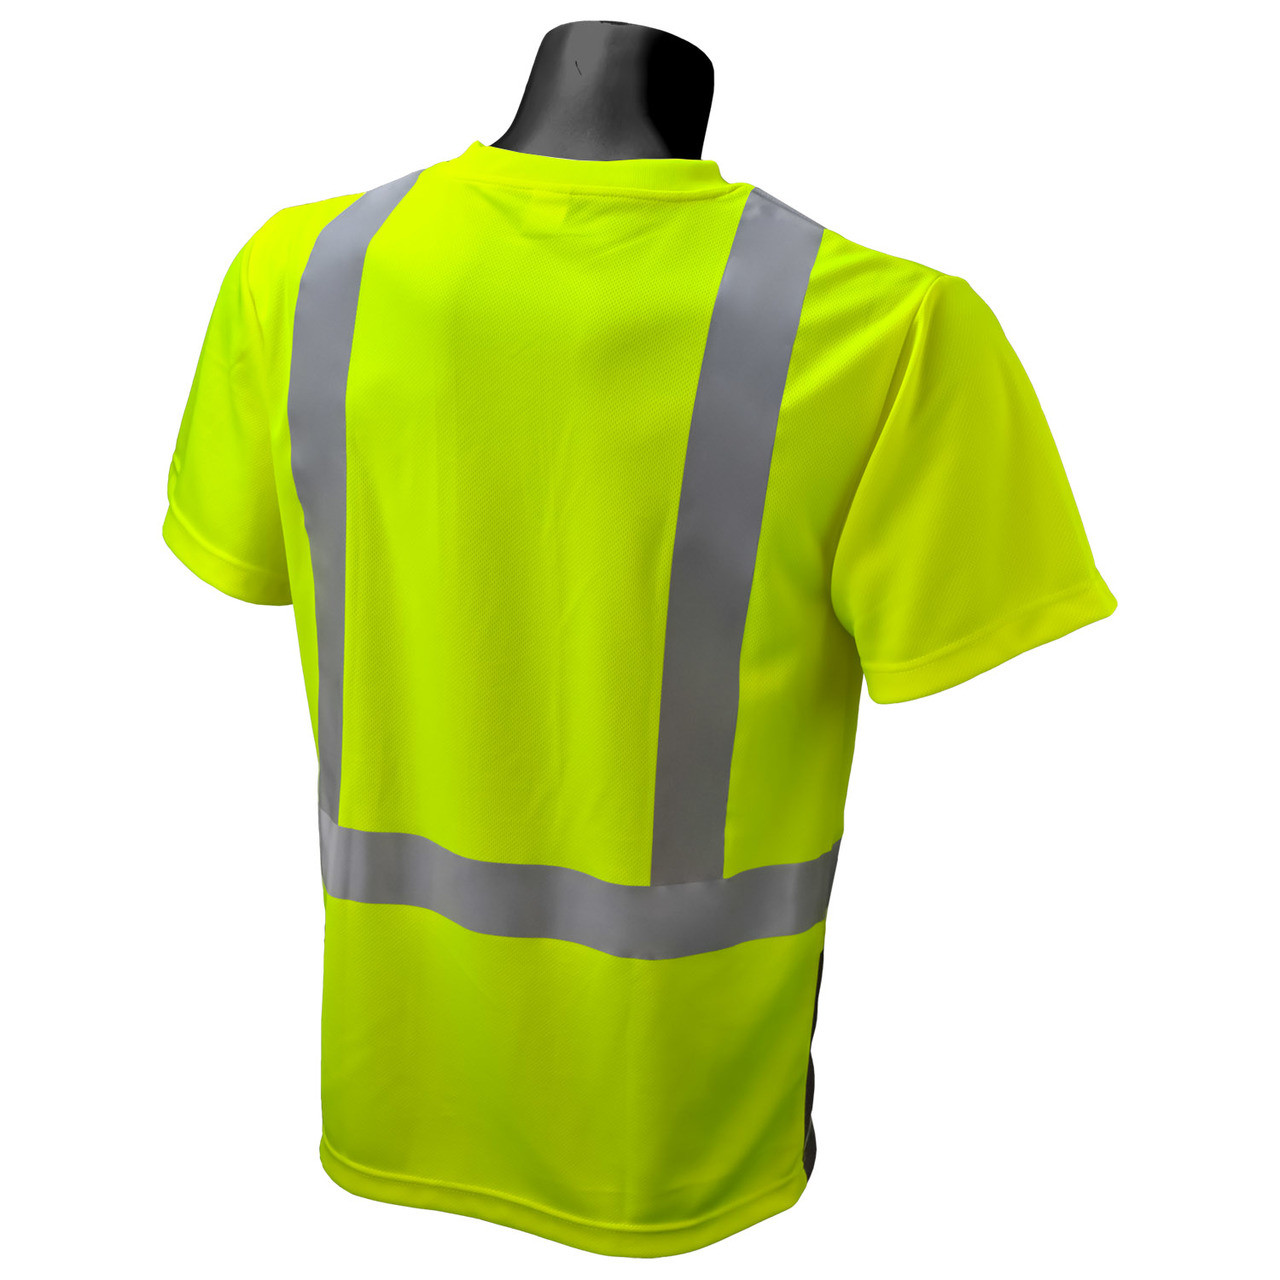 safety t-shirt with reflective stripes    Safety Green Shirt with Pocket   Safety Yellow Pocket Tee   Class 2 High Visibility T-Shirt